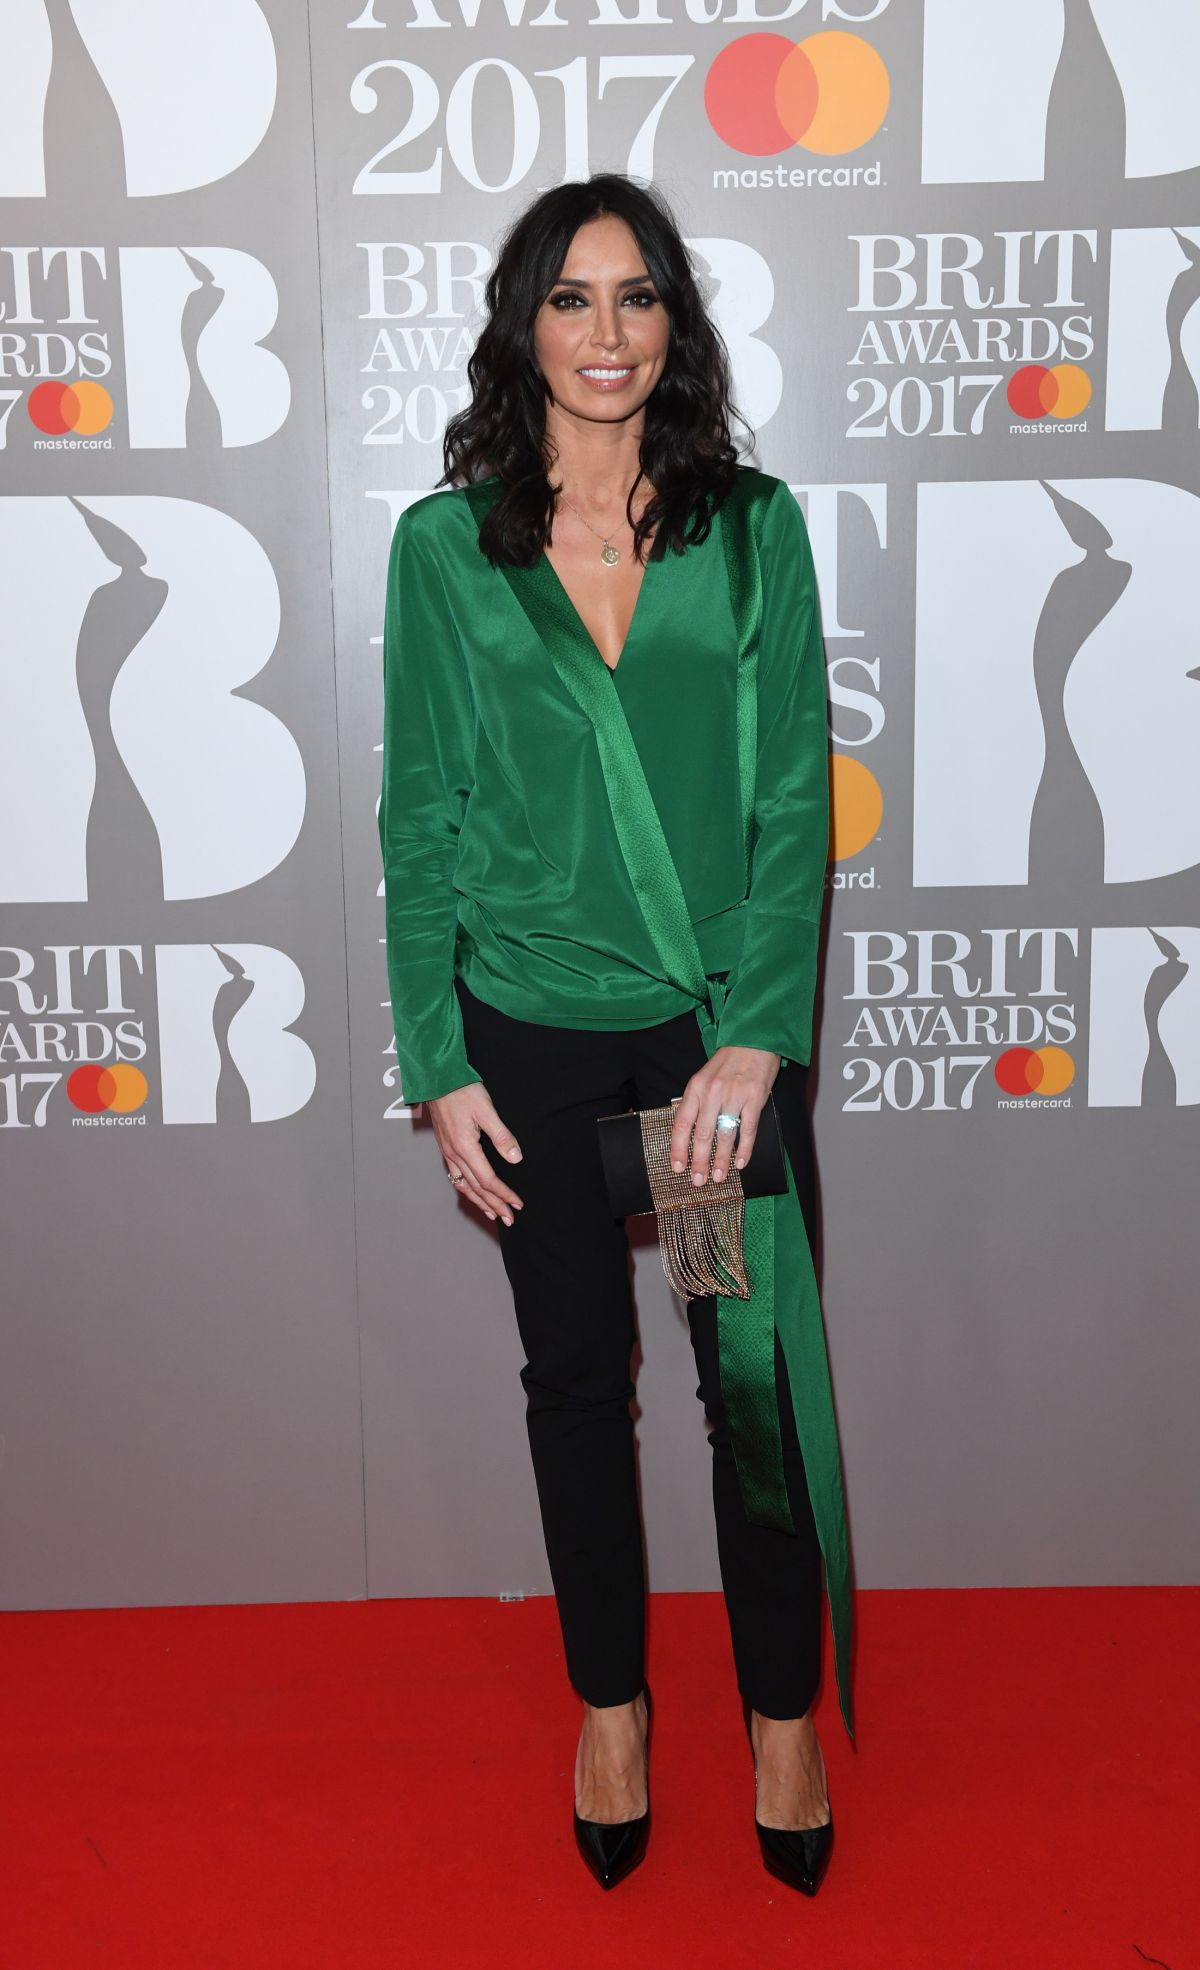 CHRISTINE BLEAKLEY at Brit Awards 2017 in London 02/22/2017